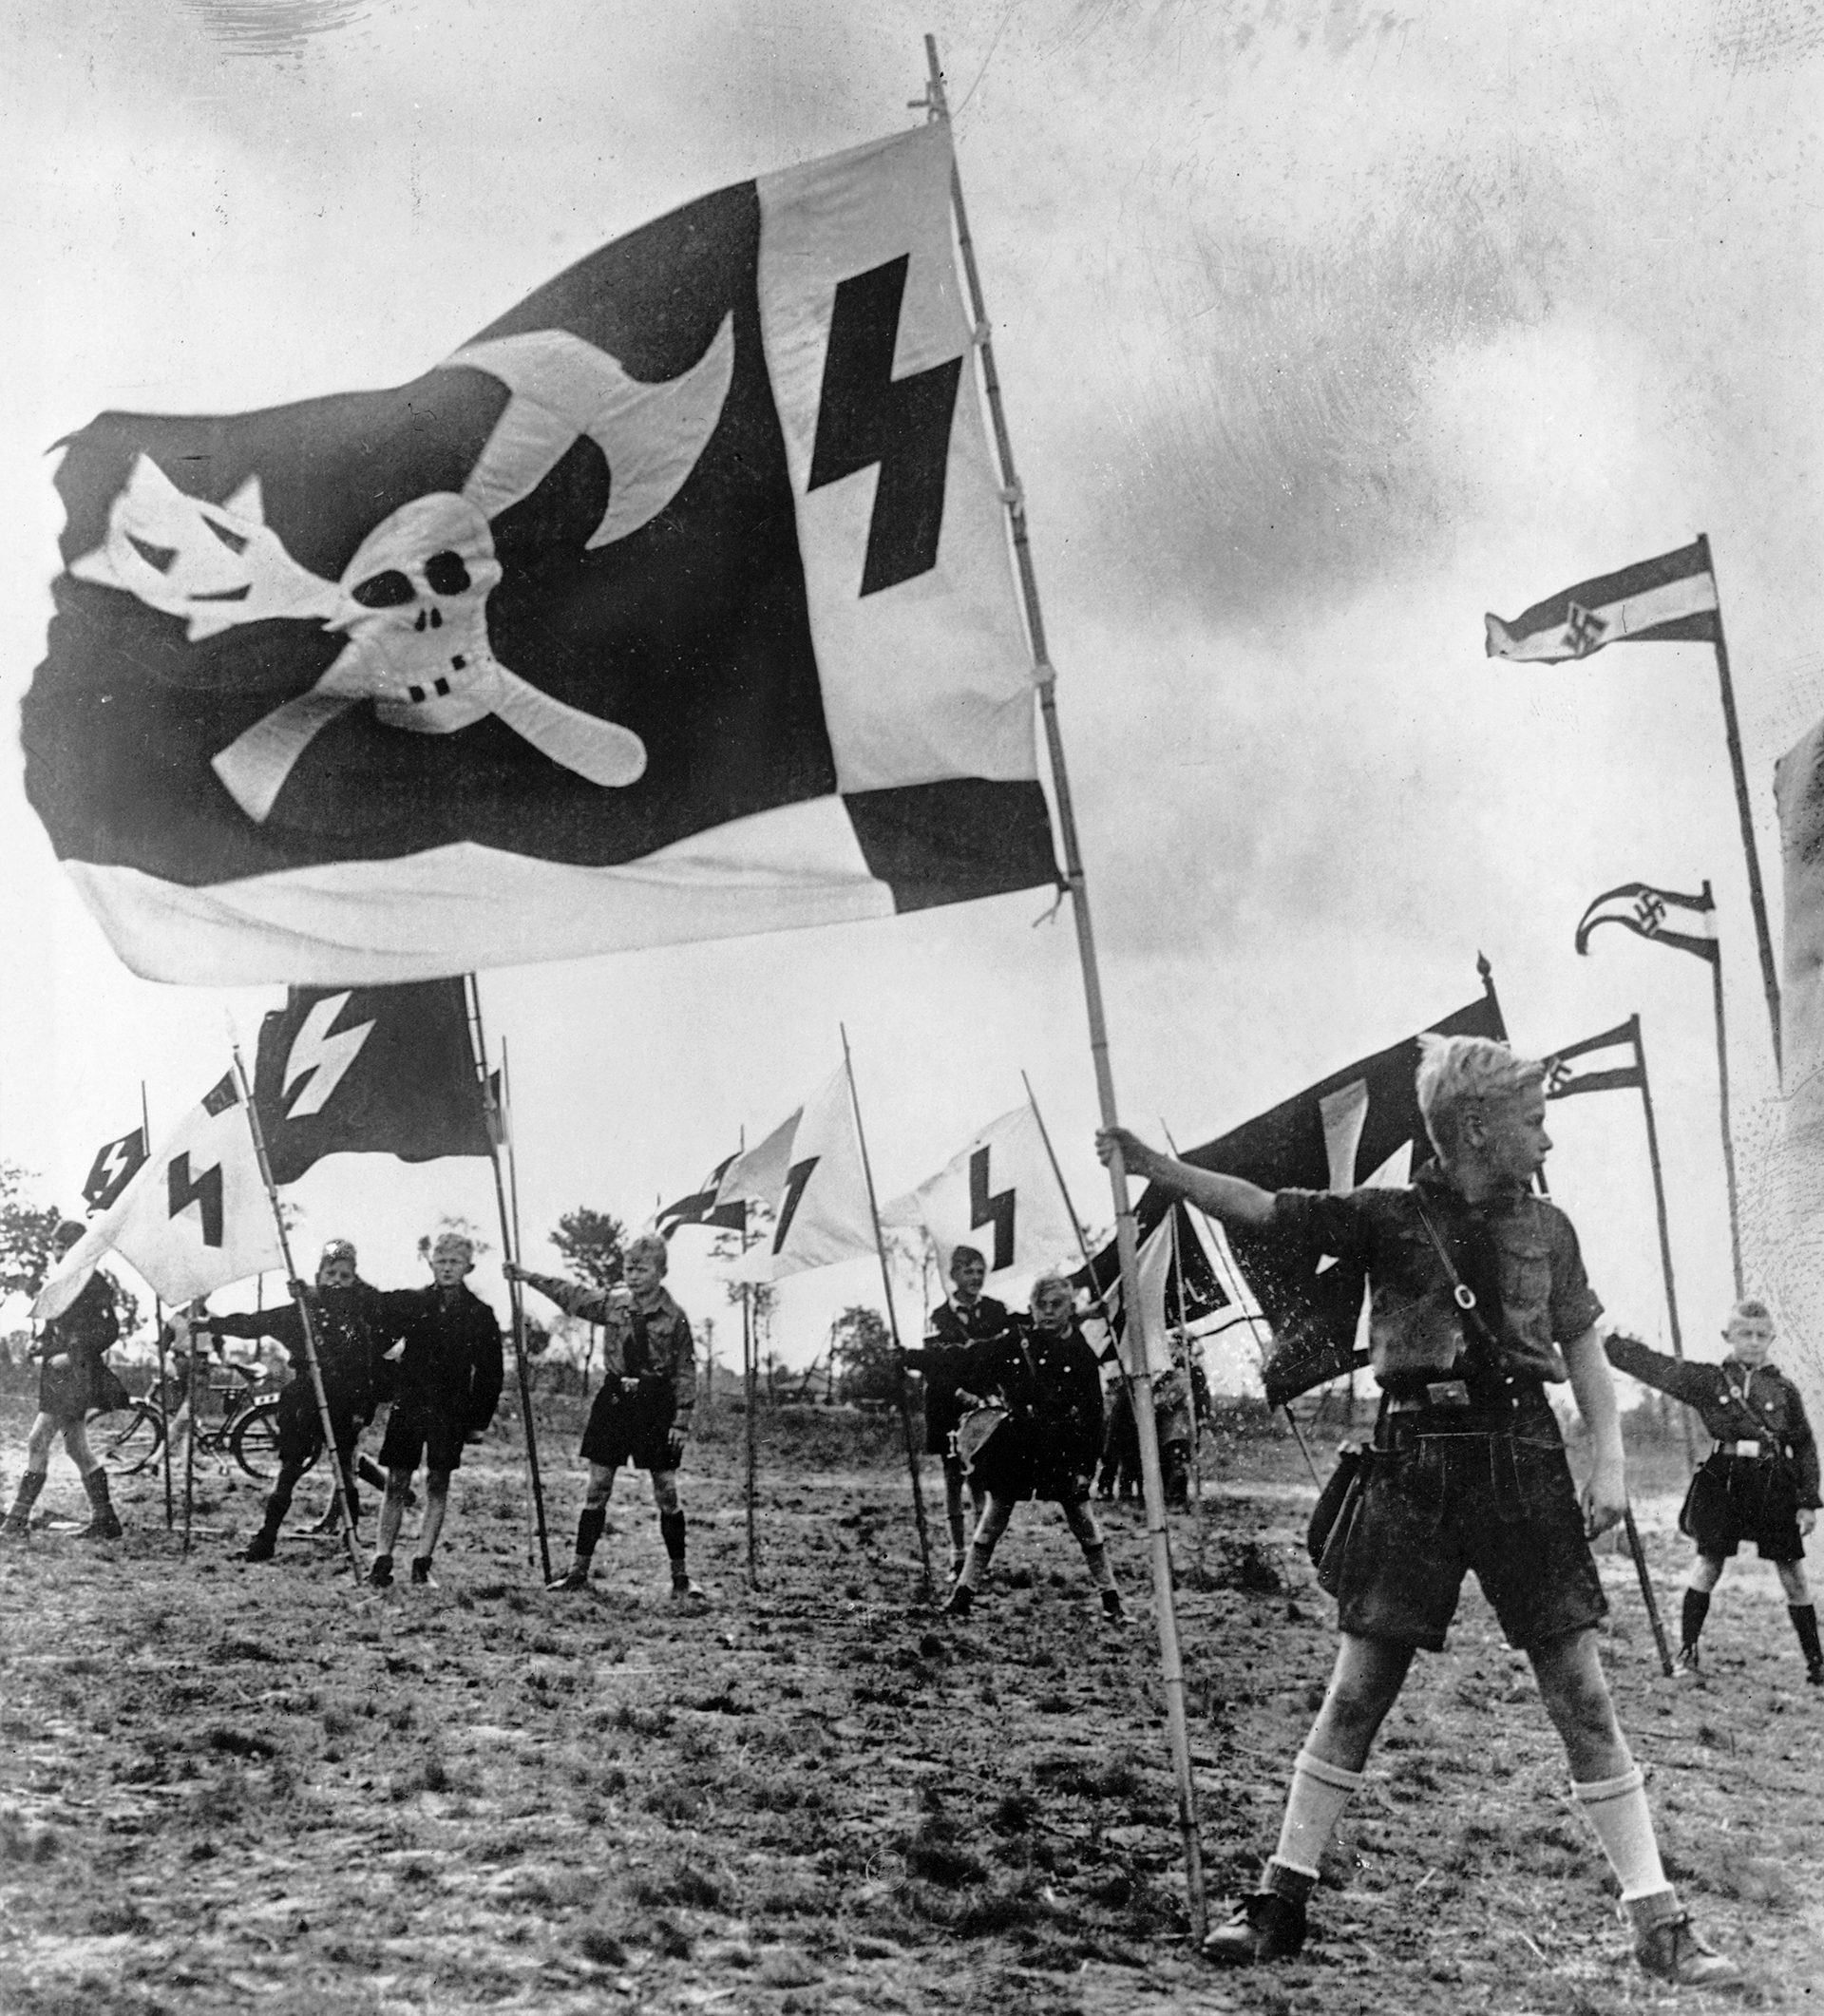 From the sixth year of age, German boys have to join the Nazi organization of youth. Equipped with uniforms and flags, they undergo strenuous physical training that leaves them well prepared for the two years they will later serve in the Wehrmacht. (Credit: Hulton-Deutsch Collection/Corbis via Getty Images)